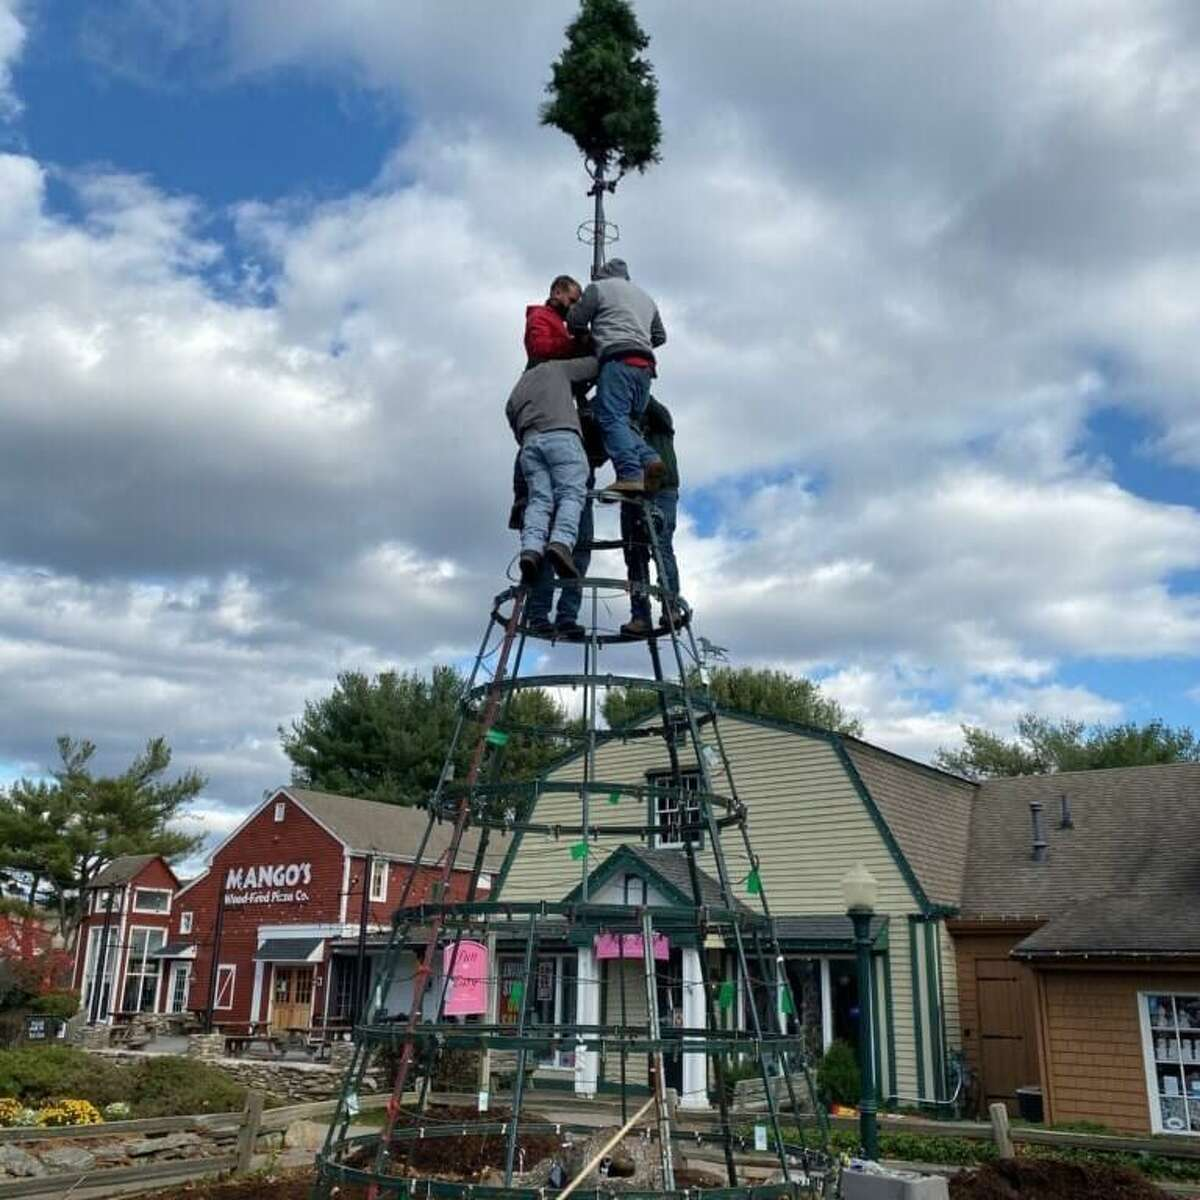 Workers set up a central element of the new light display at Olde Mistick Village recently. The shops will be open from 10 a.m.-8 p.m. Monday through Thursday, 10-9 on Fridays and Saturdays and 11-6 on Sundays.